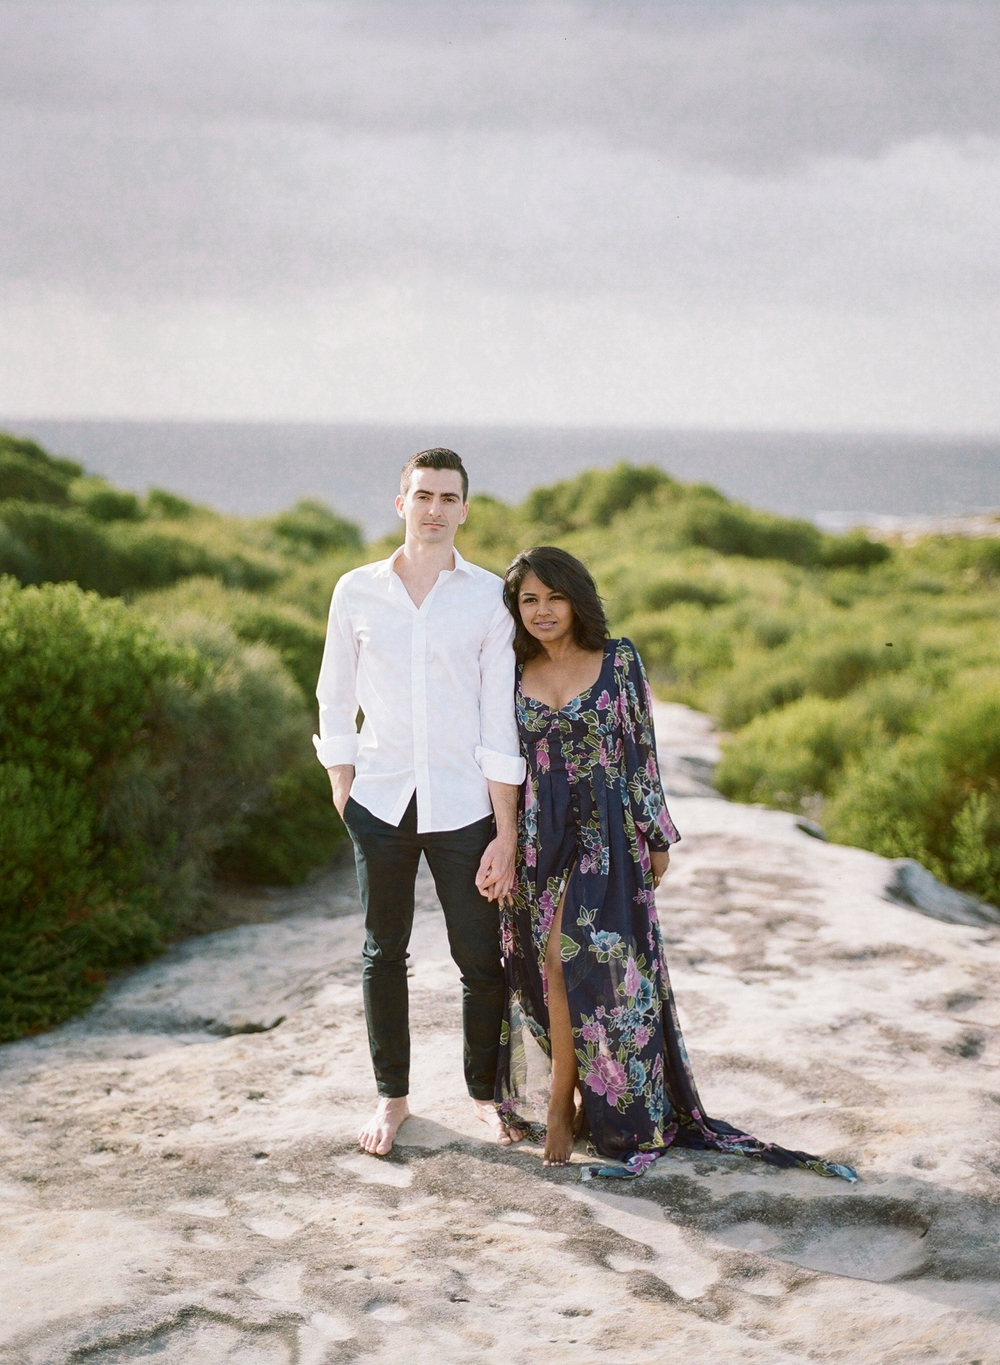 Coastal Sydney couples session by Mr Edwards Photography_0737_1158.jpg